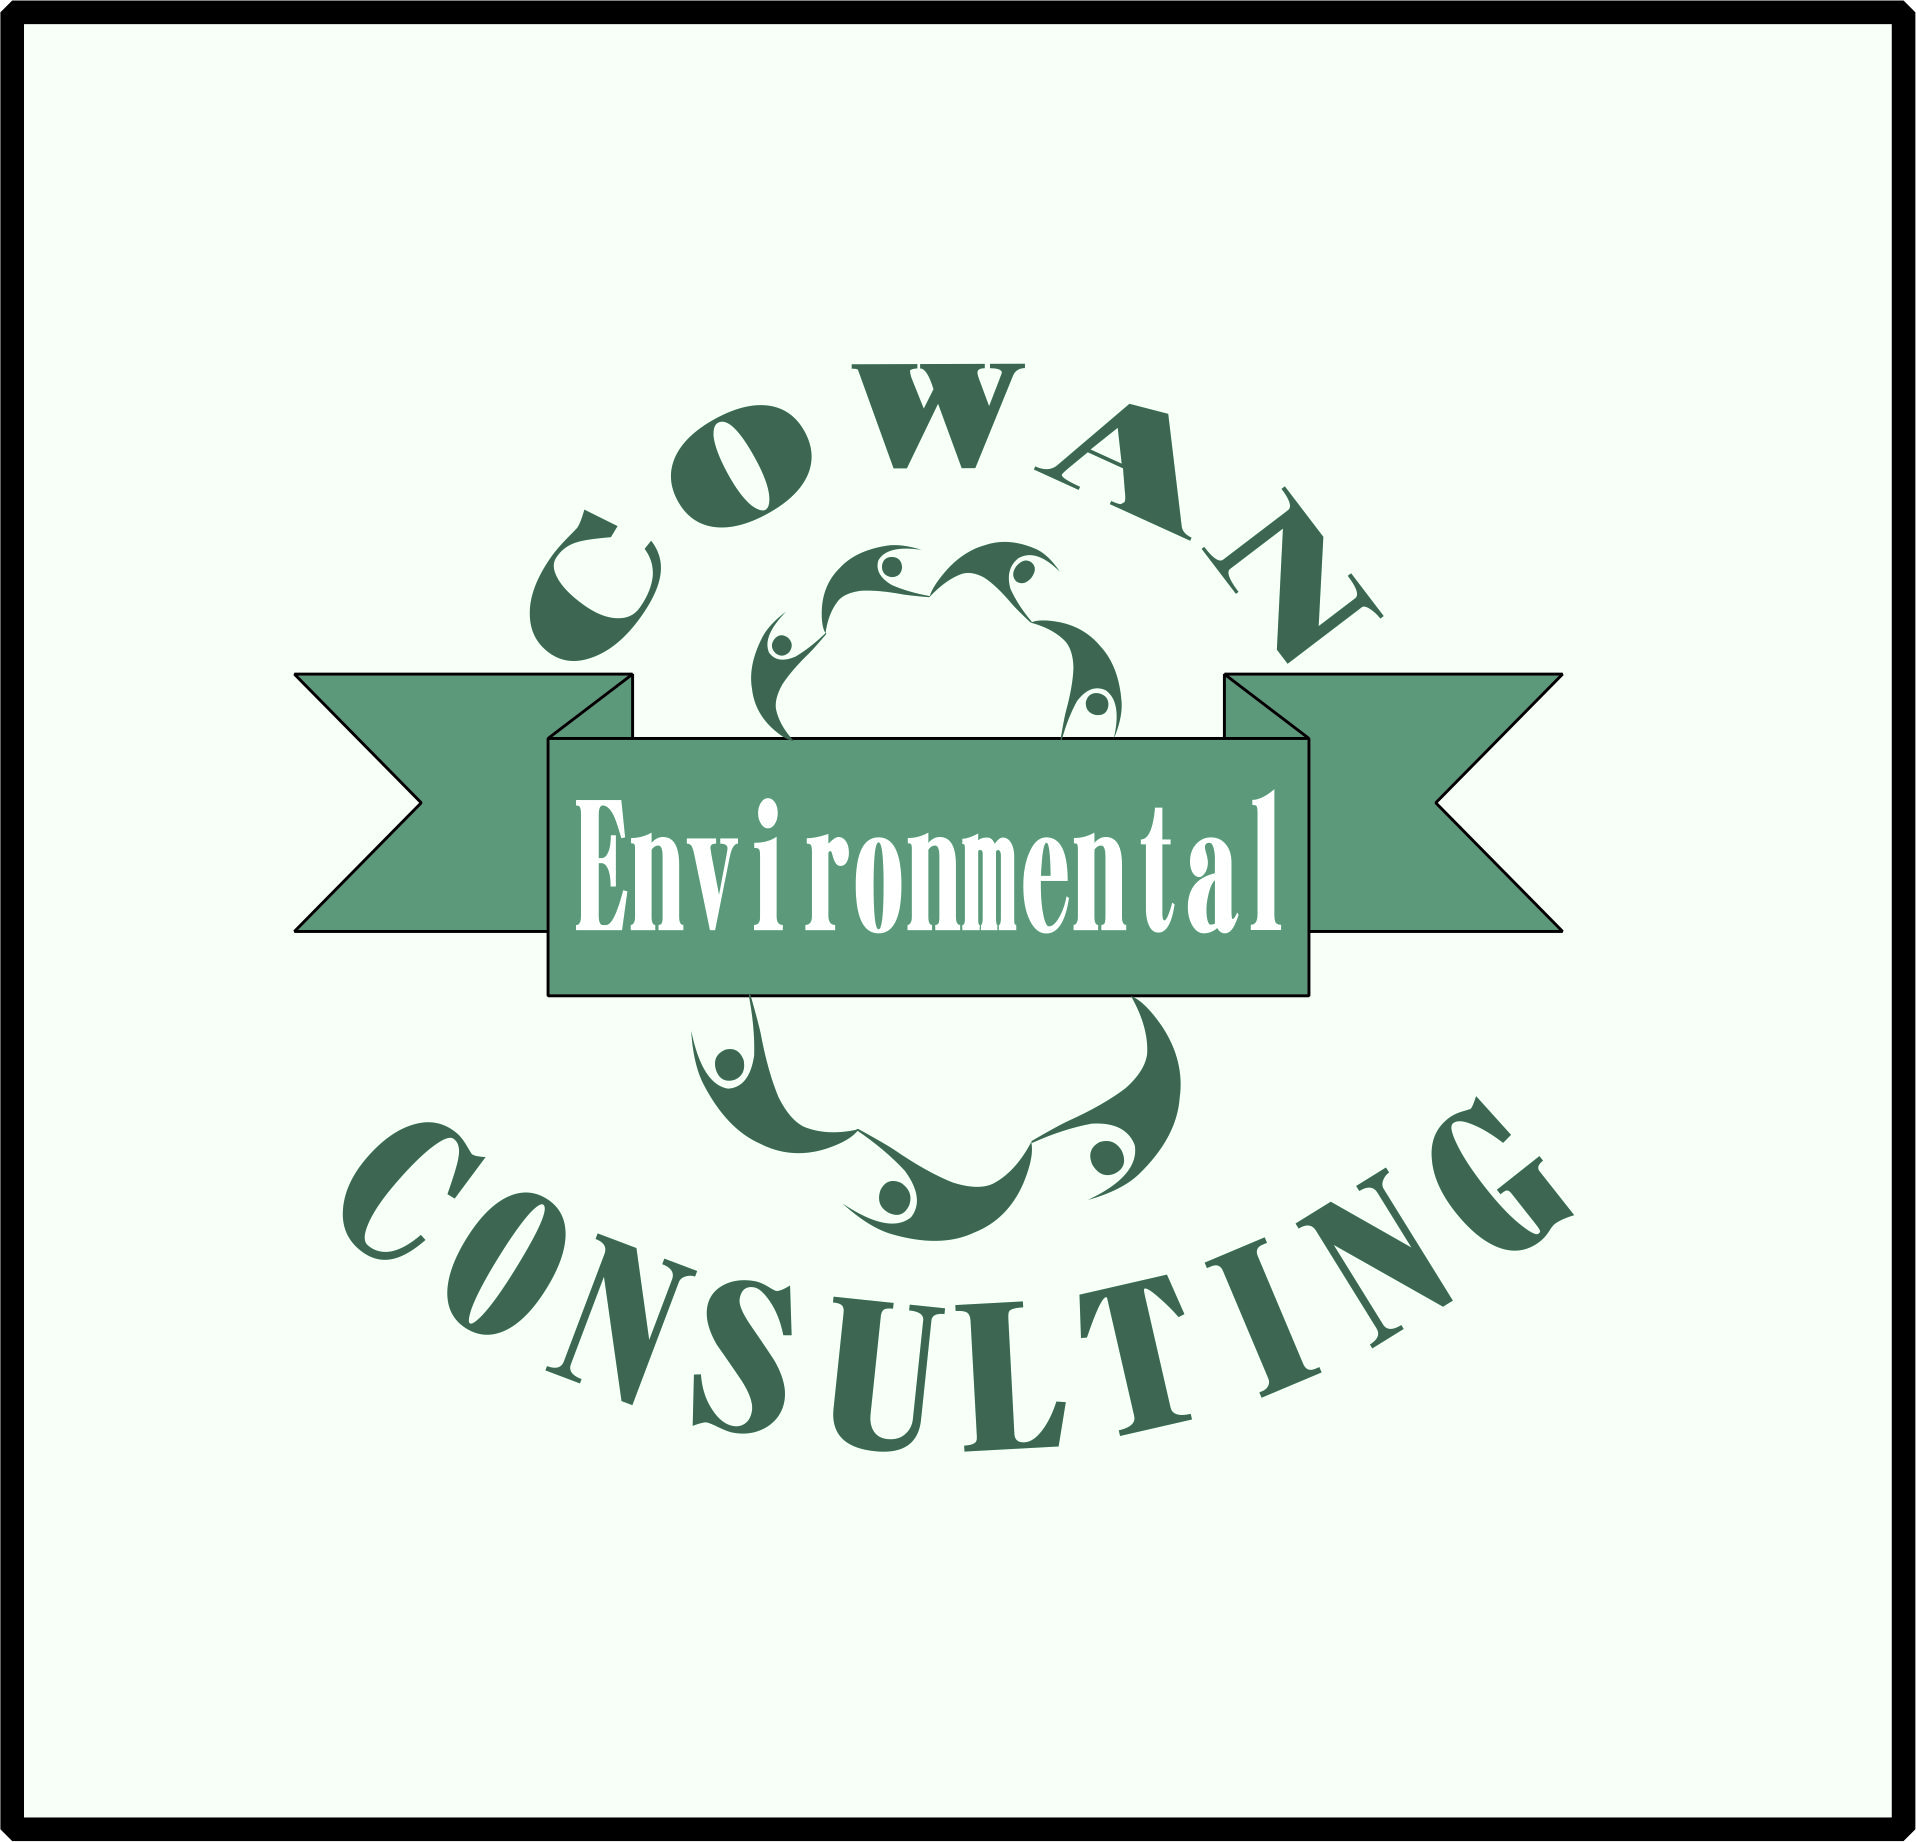 Logo Design by Teguh Hanuraga - Entry No. 48 in the Logo Design Contest Fun Logo Design for Cowan Environmental Consulting.